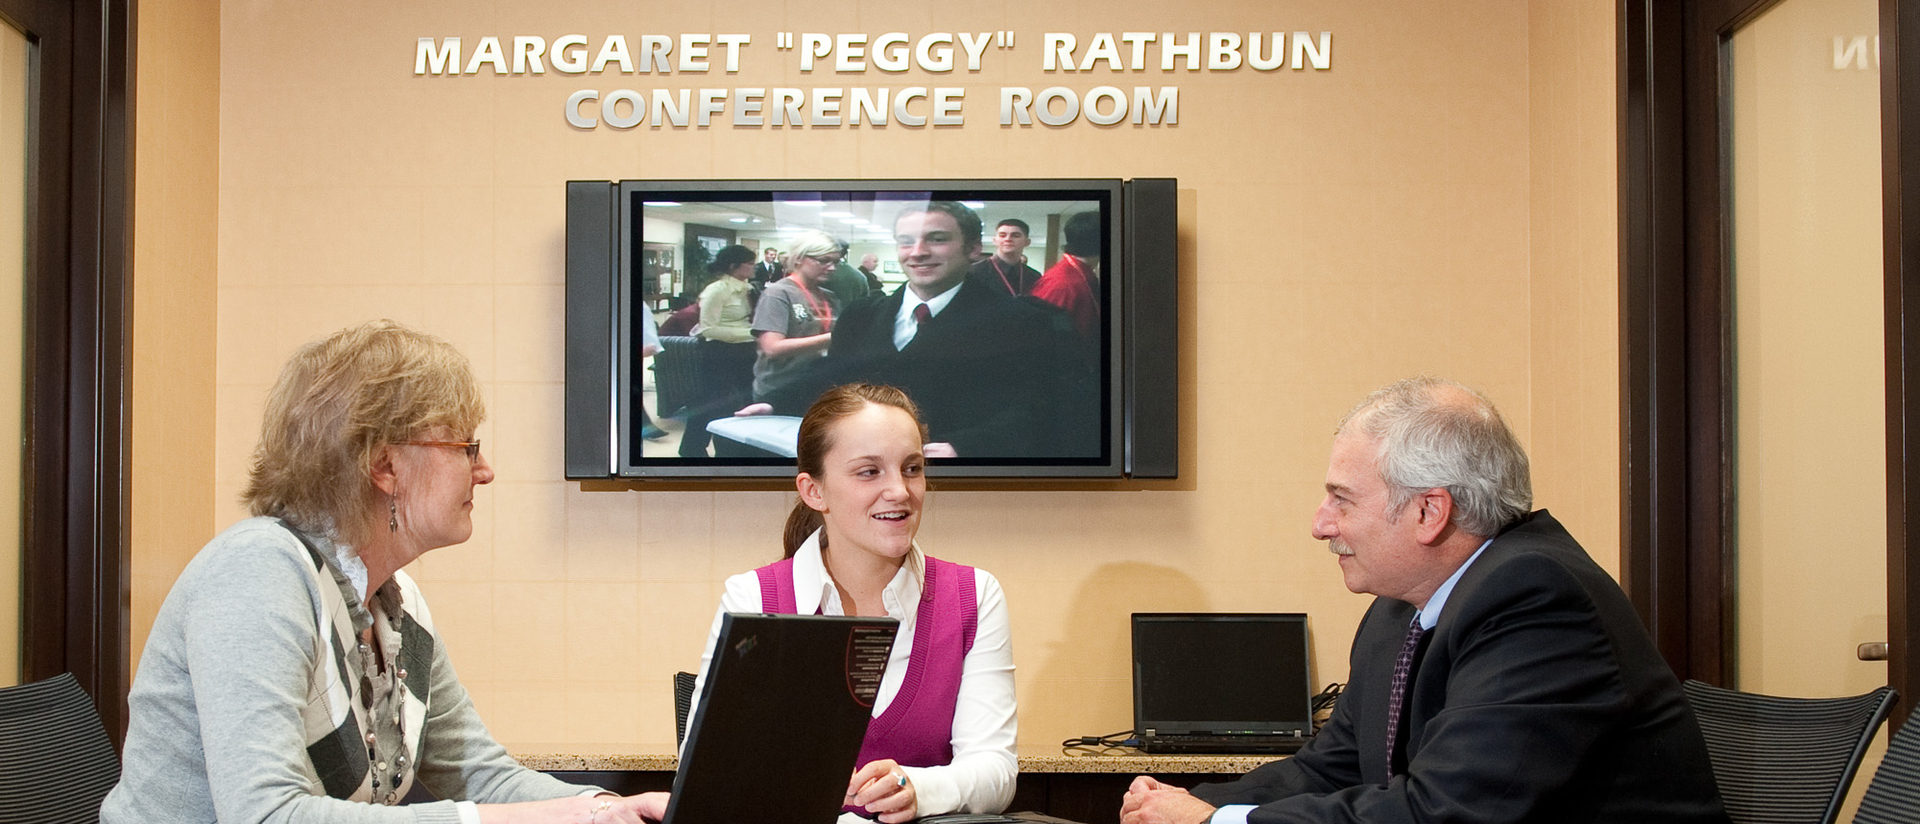 Margaret Peggy Rathbun Conference Room